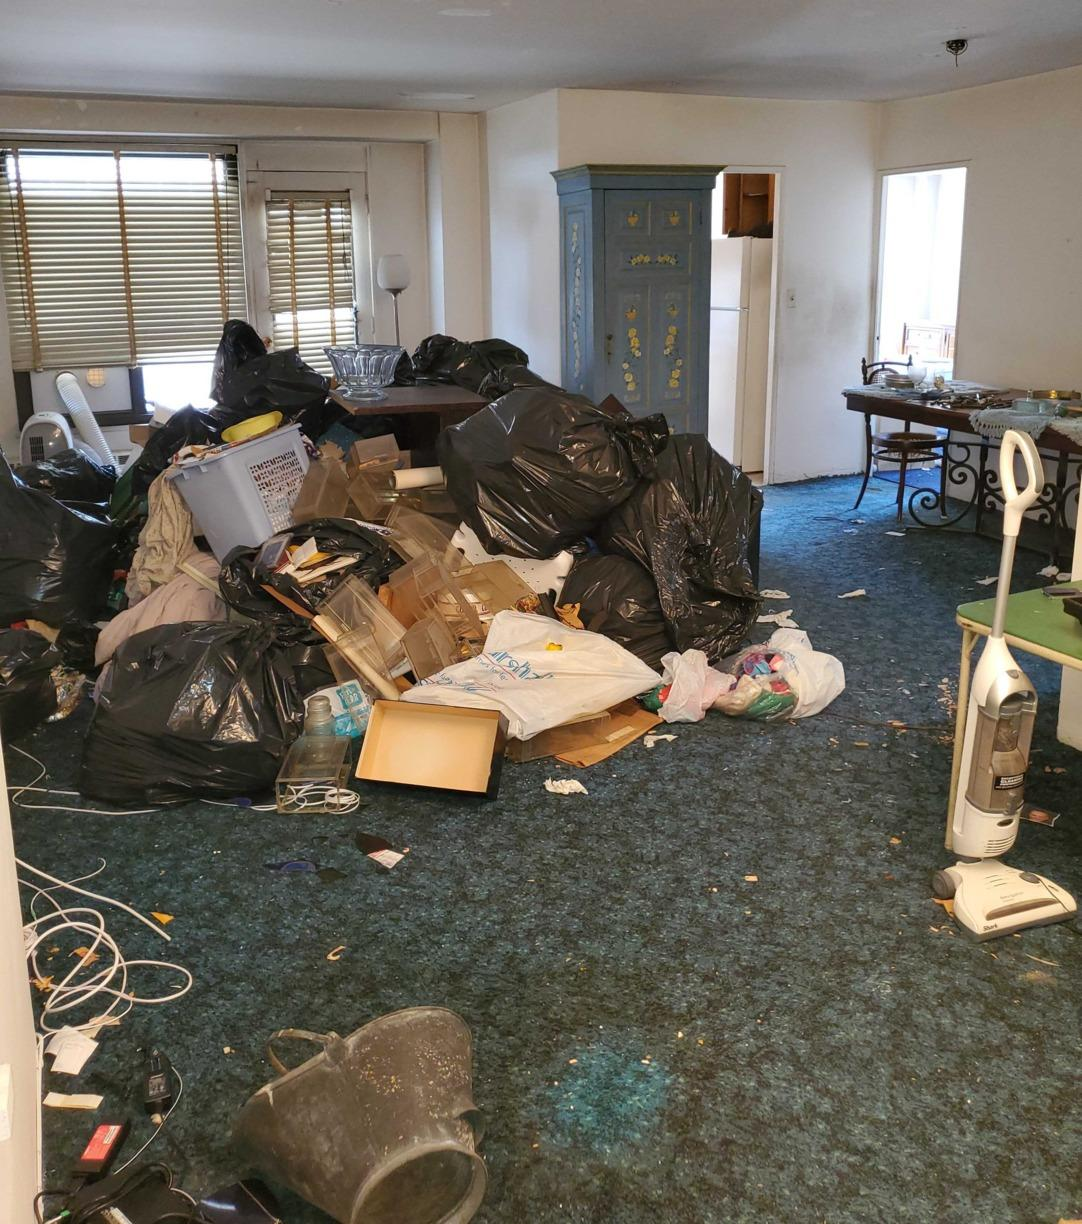 Full Apartment Cleanout in Rego Park - Before Photo